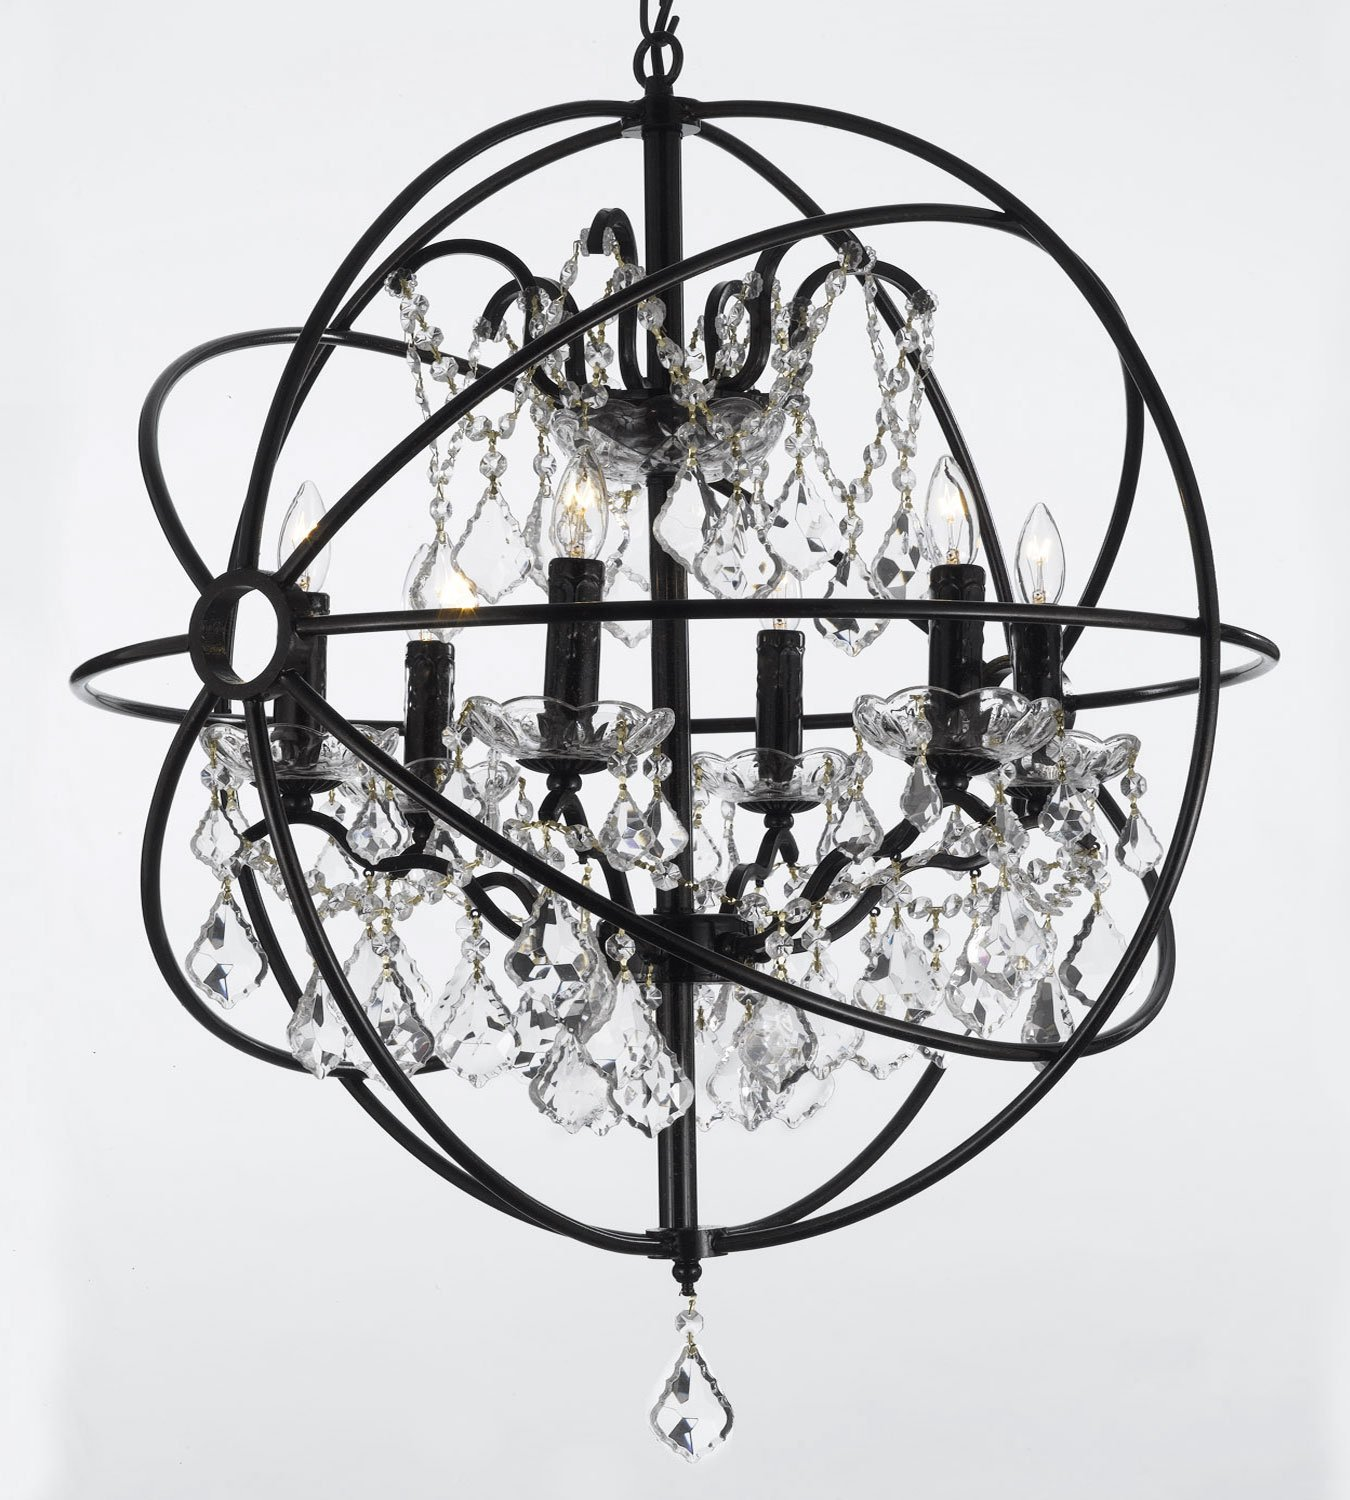 Foucault S Orb Wrought Iron Crystal Chandelier Lighting Country French 6 Lights Ht25 X Wd24 Ceiling Fixture Sphere Com